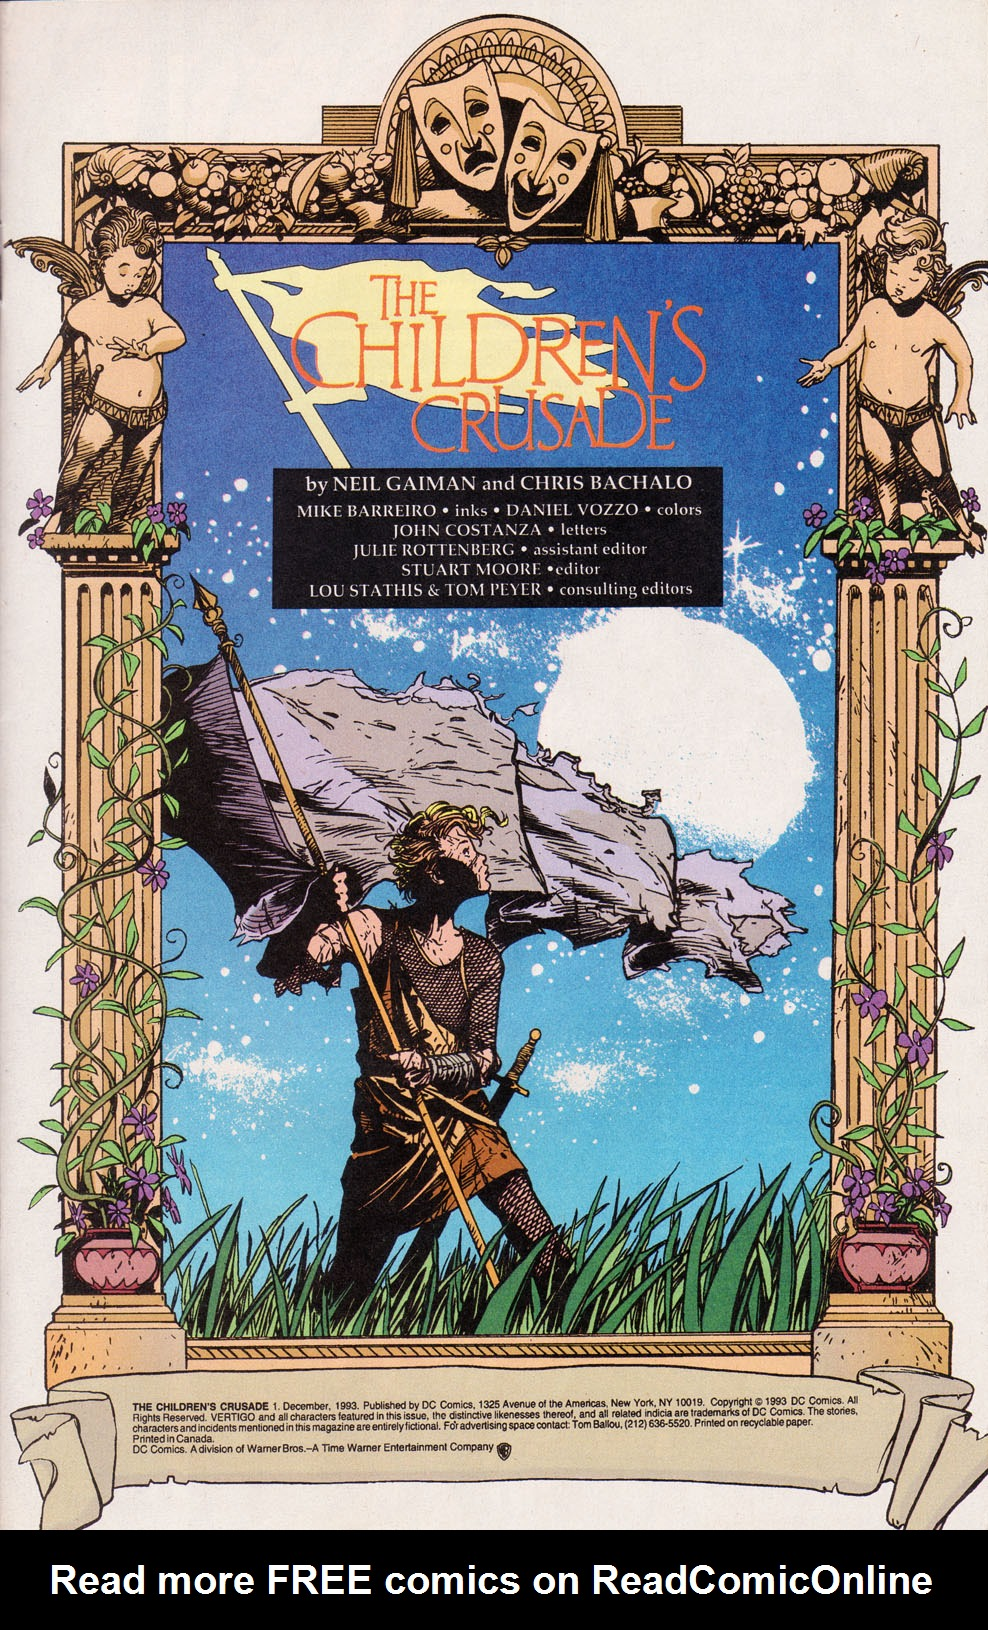 Read online The Children's Crusade comic -  Issue #1 - 2